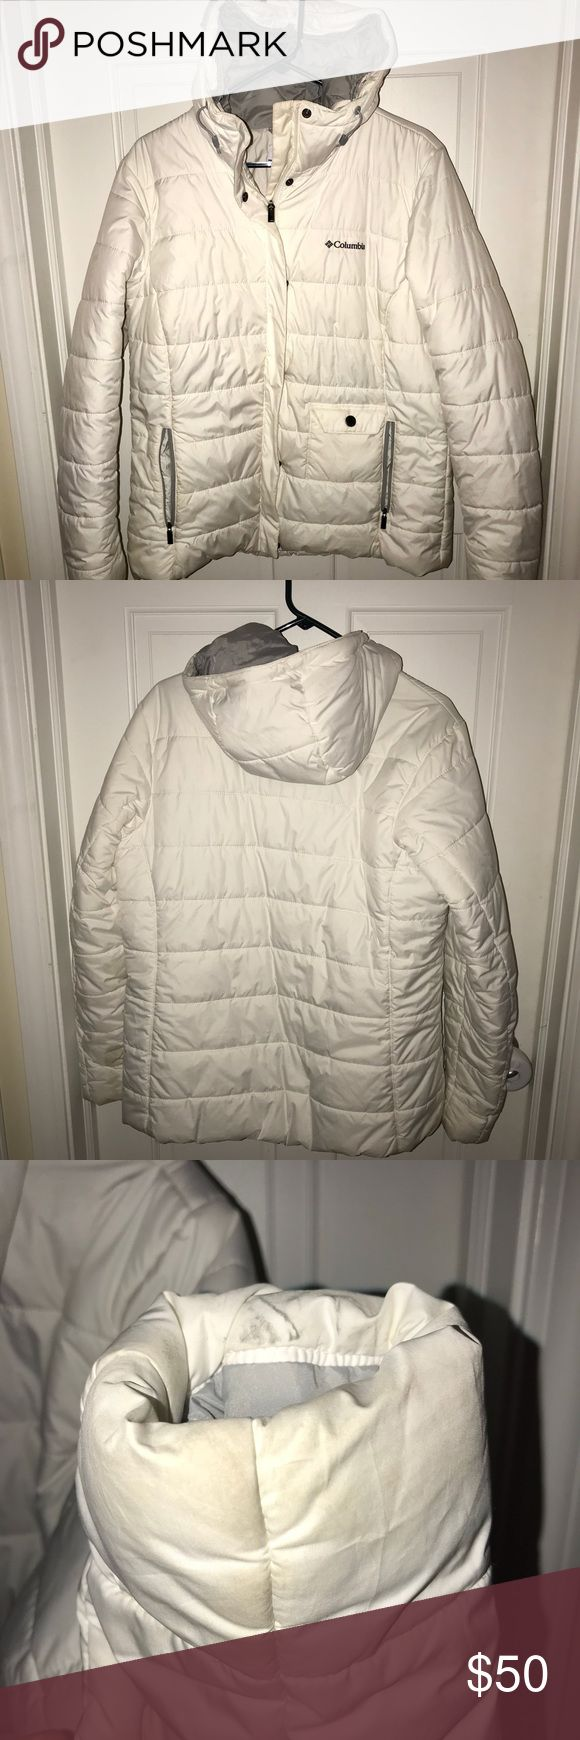 Columbia Women's Large White Winter Coat Beautiful and warm Columbia winter coat. Worn one winter, has discoloration on arm/wrist area from clearing off a slushy car, small makeup mark near neck area. Stains have not been washed or treated, they may come out. Over all beautiful condition, fully functional and I would continue wearing it if it still fit me! Columbia Jackets & Coats Puffers